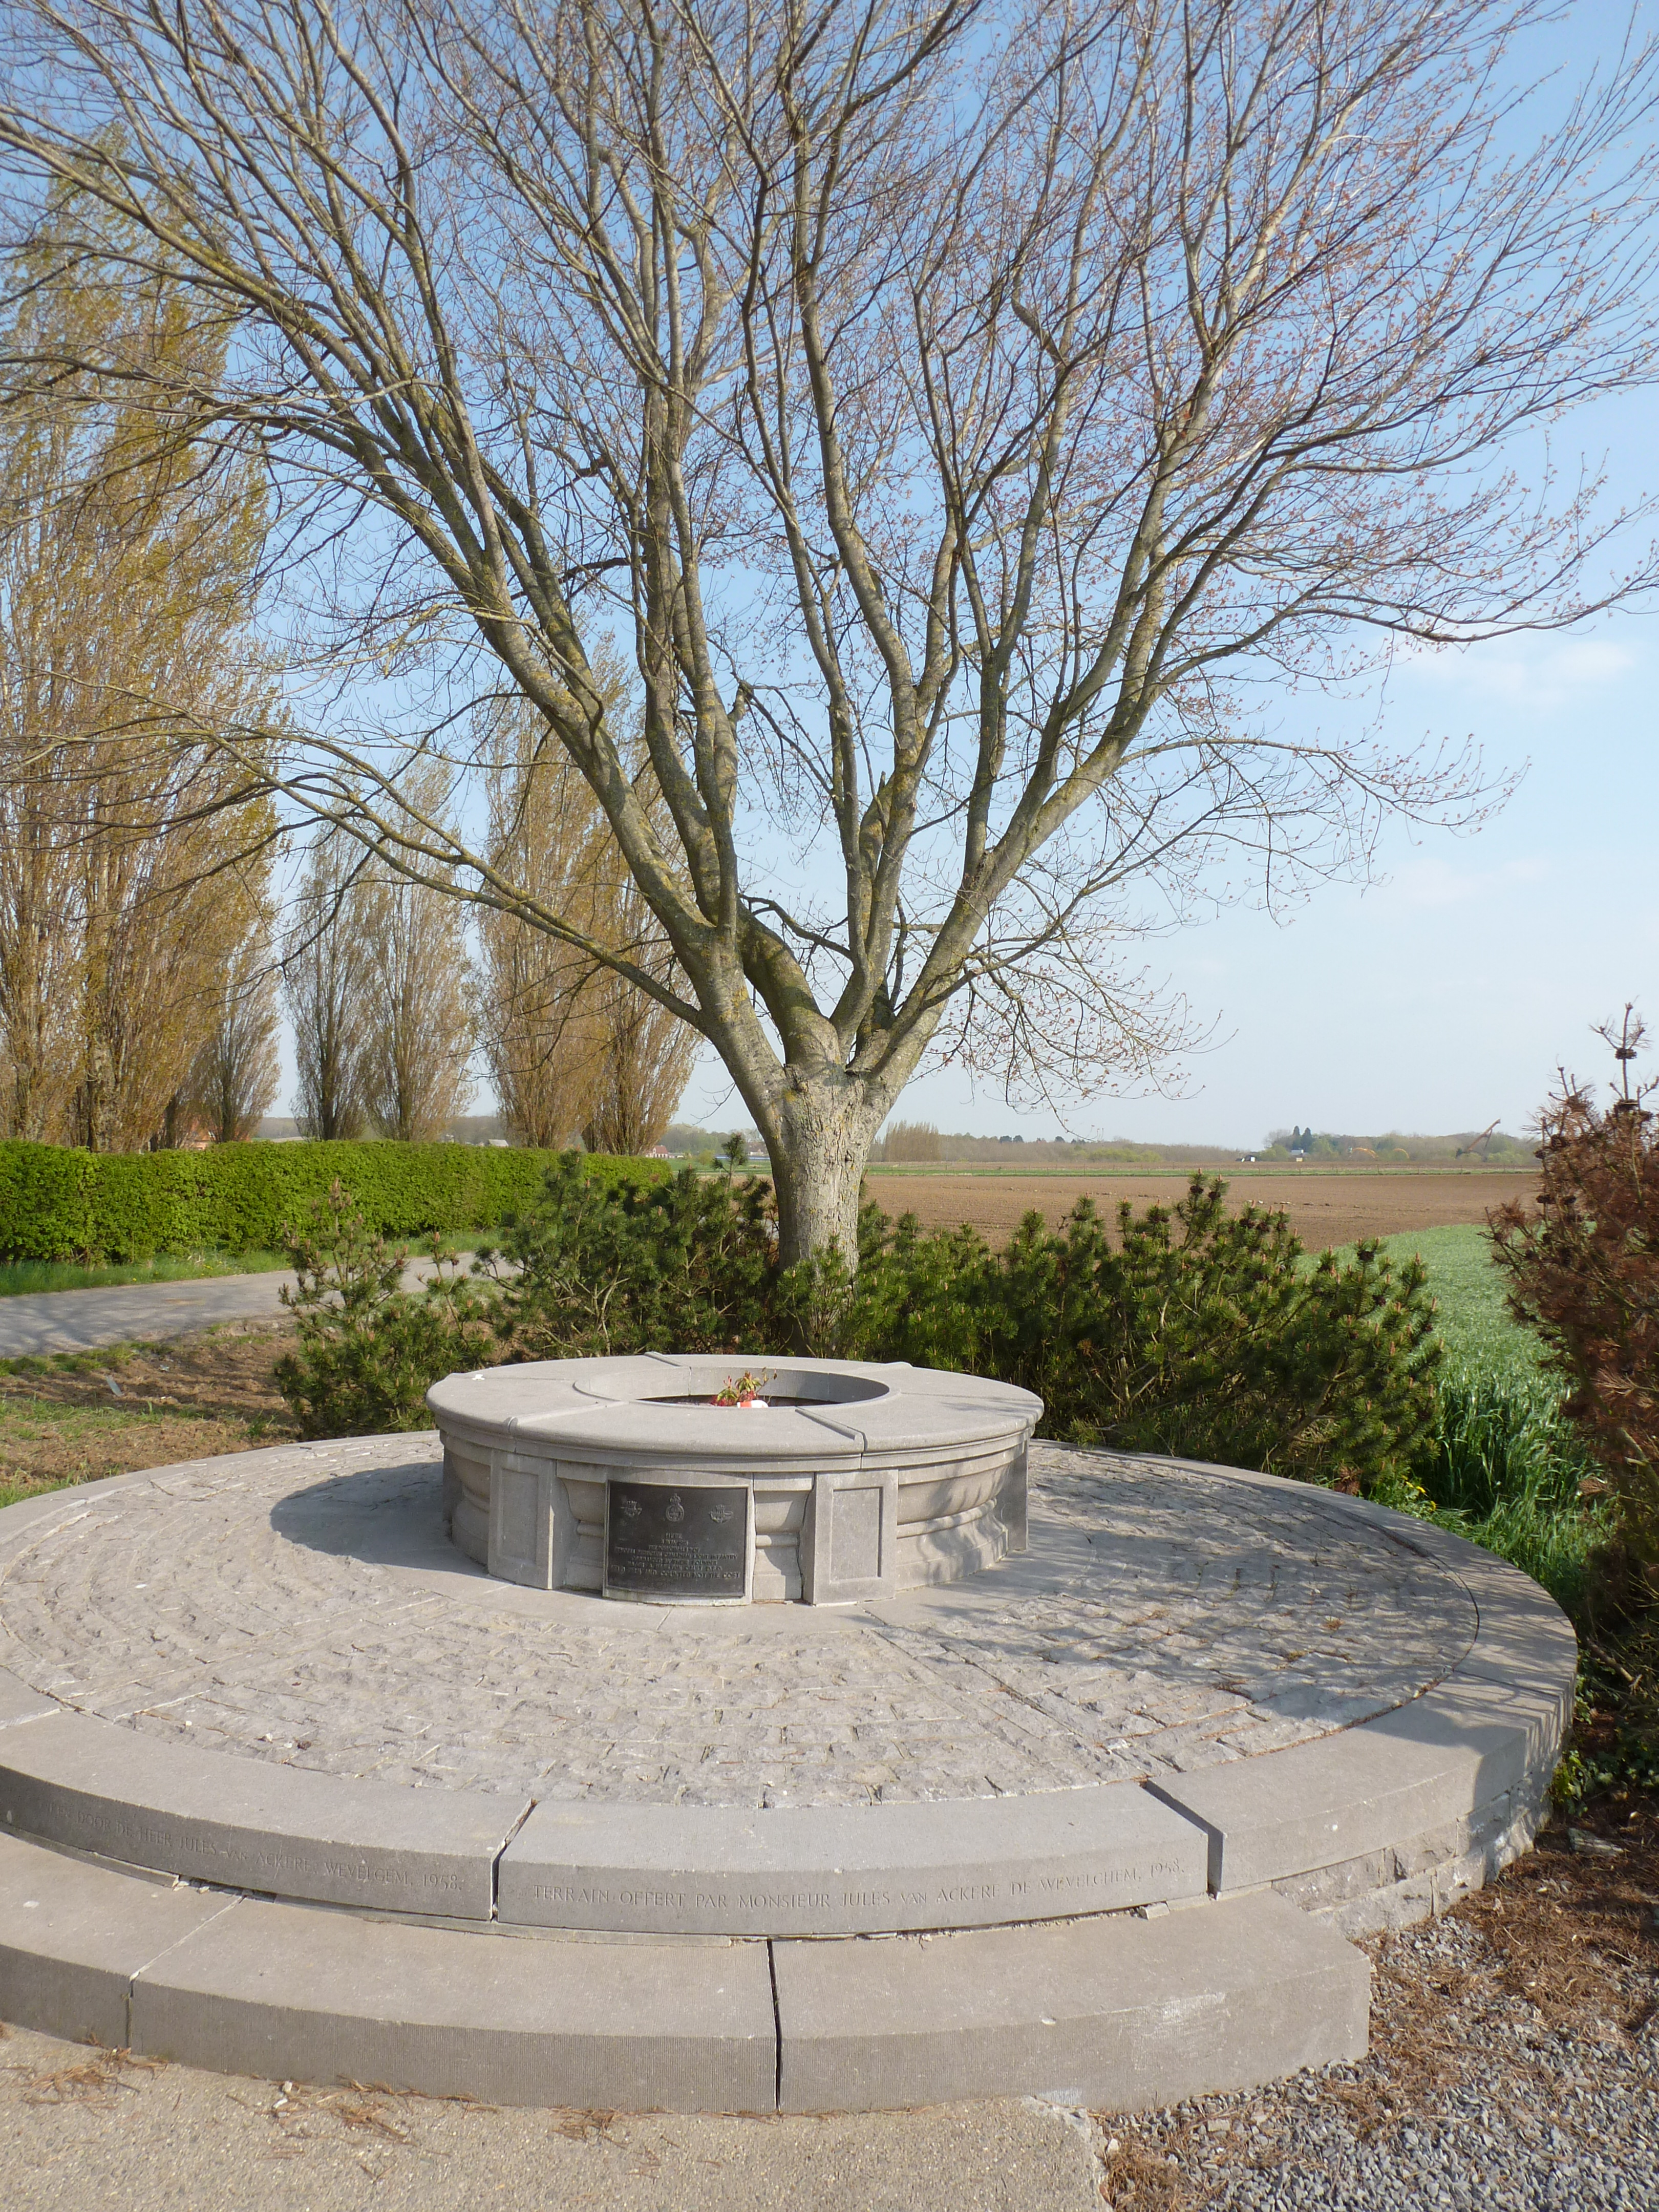 PPCLI Ypres battlefield tour